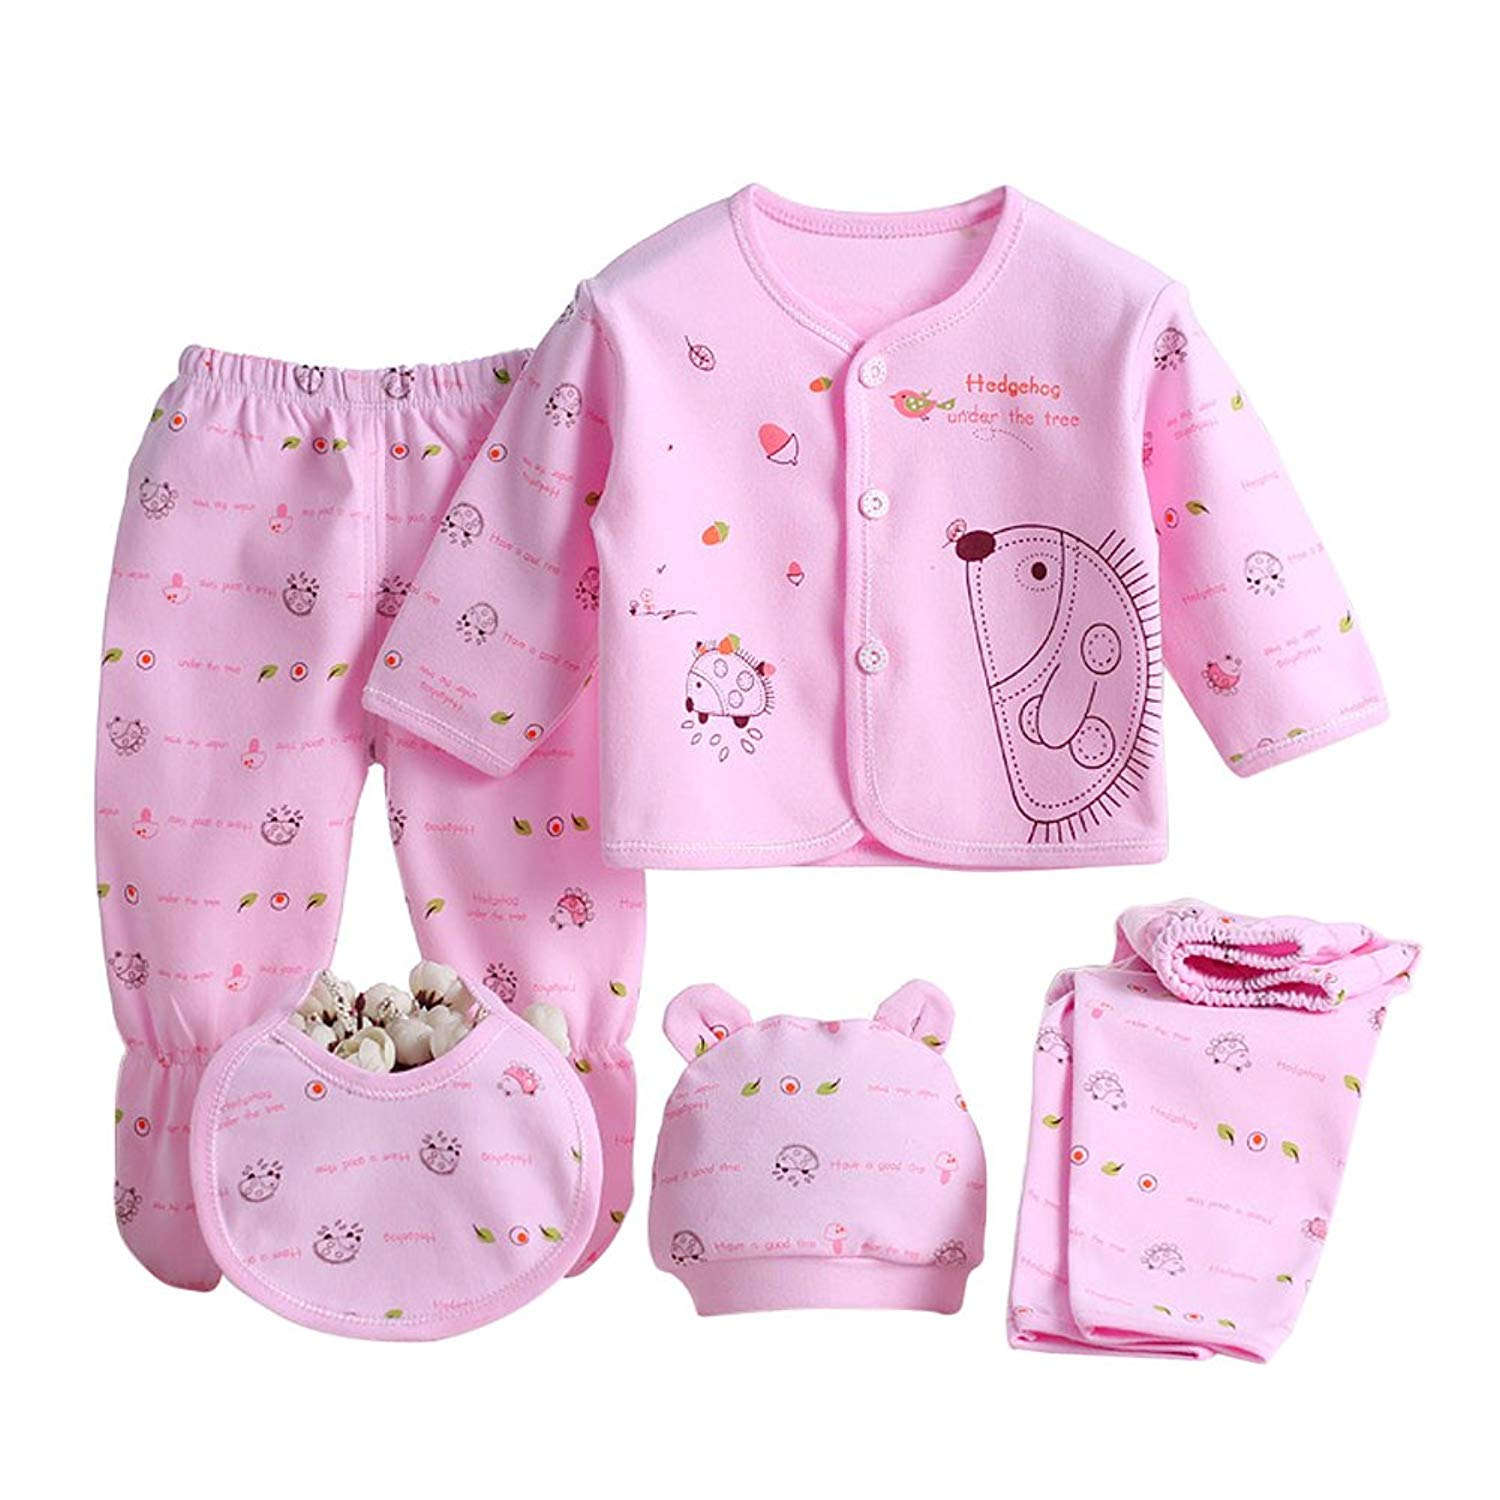 f952b7f532743 Get Quotations · XWDA Baby Infant Cotton Clothes Set 5Pcs Unisex Newborn  Outfit Infant First Christmas Xmas Christening Gifts